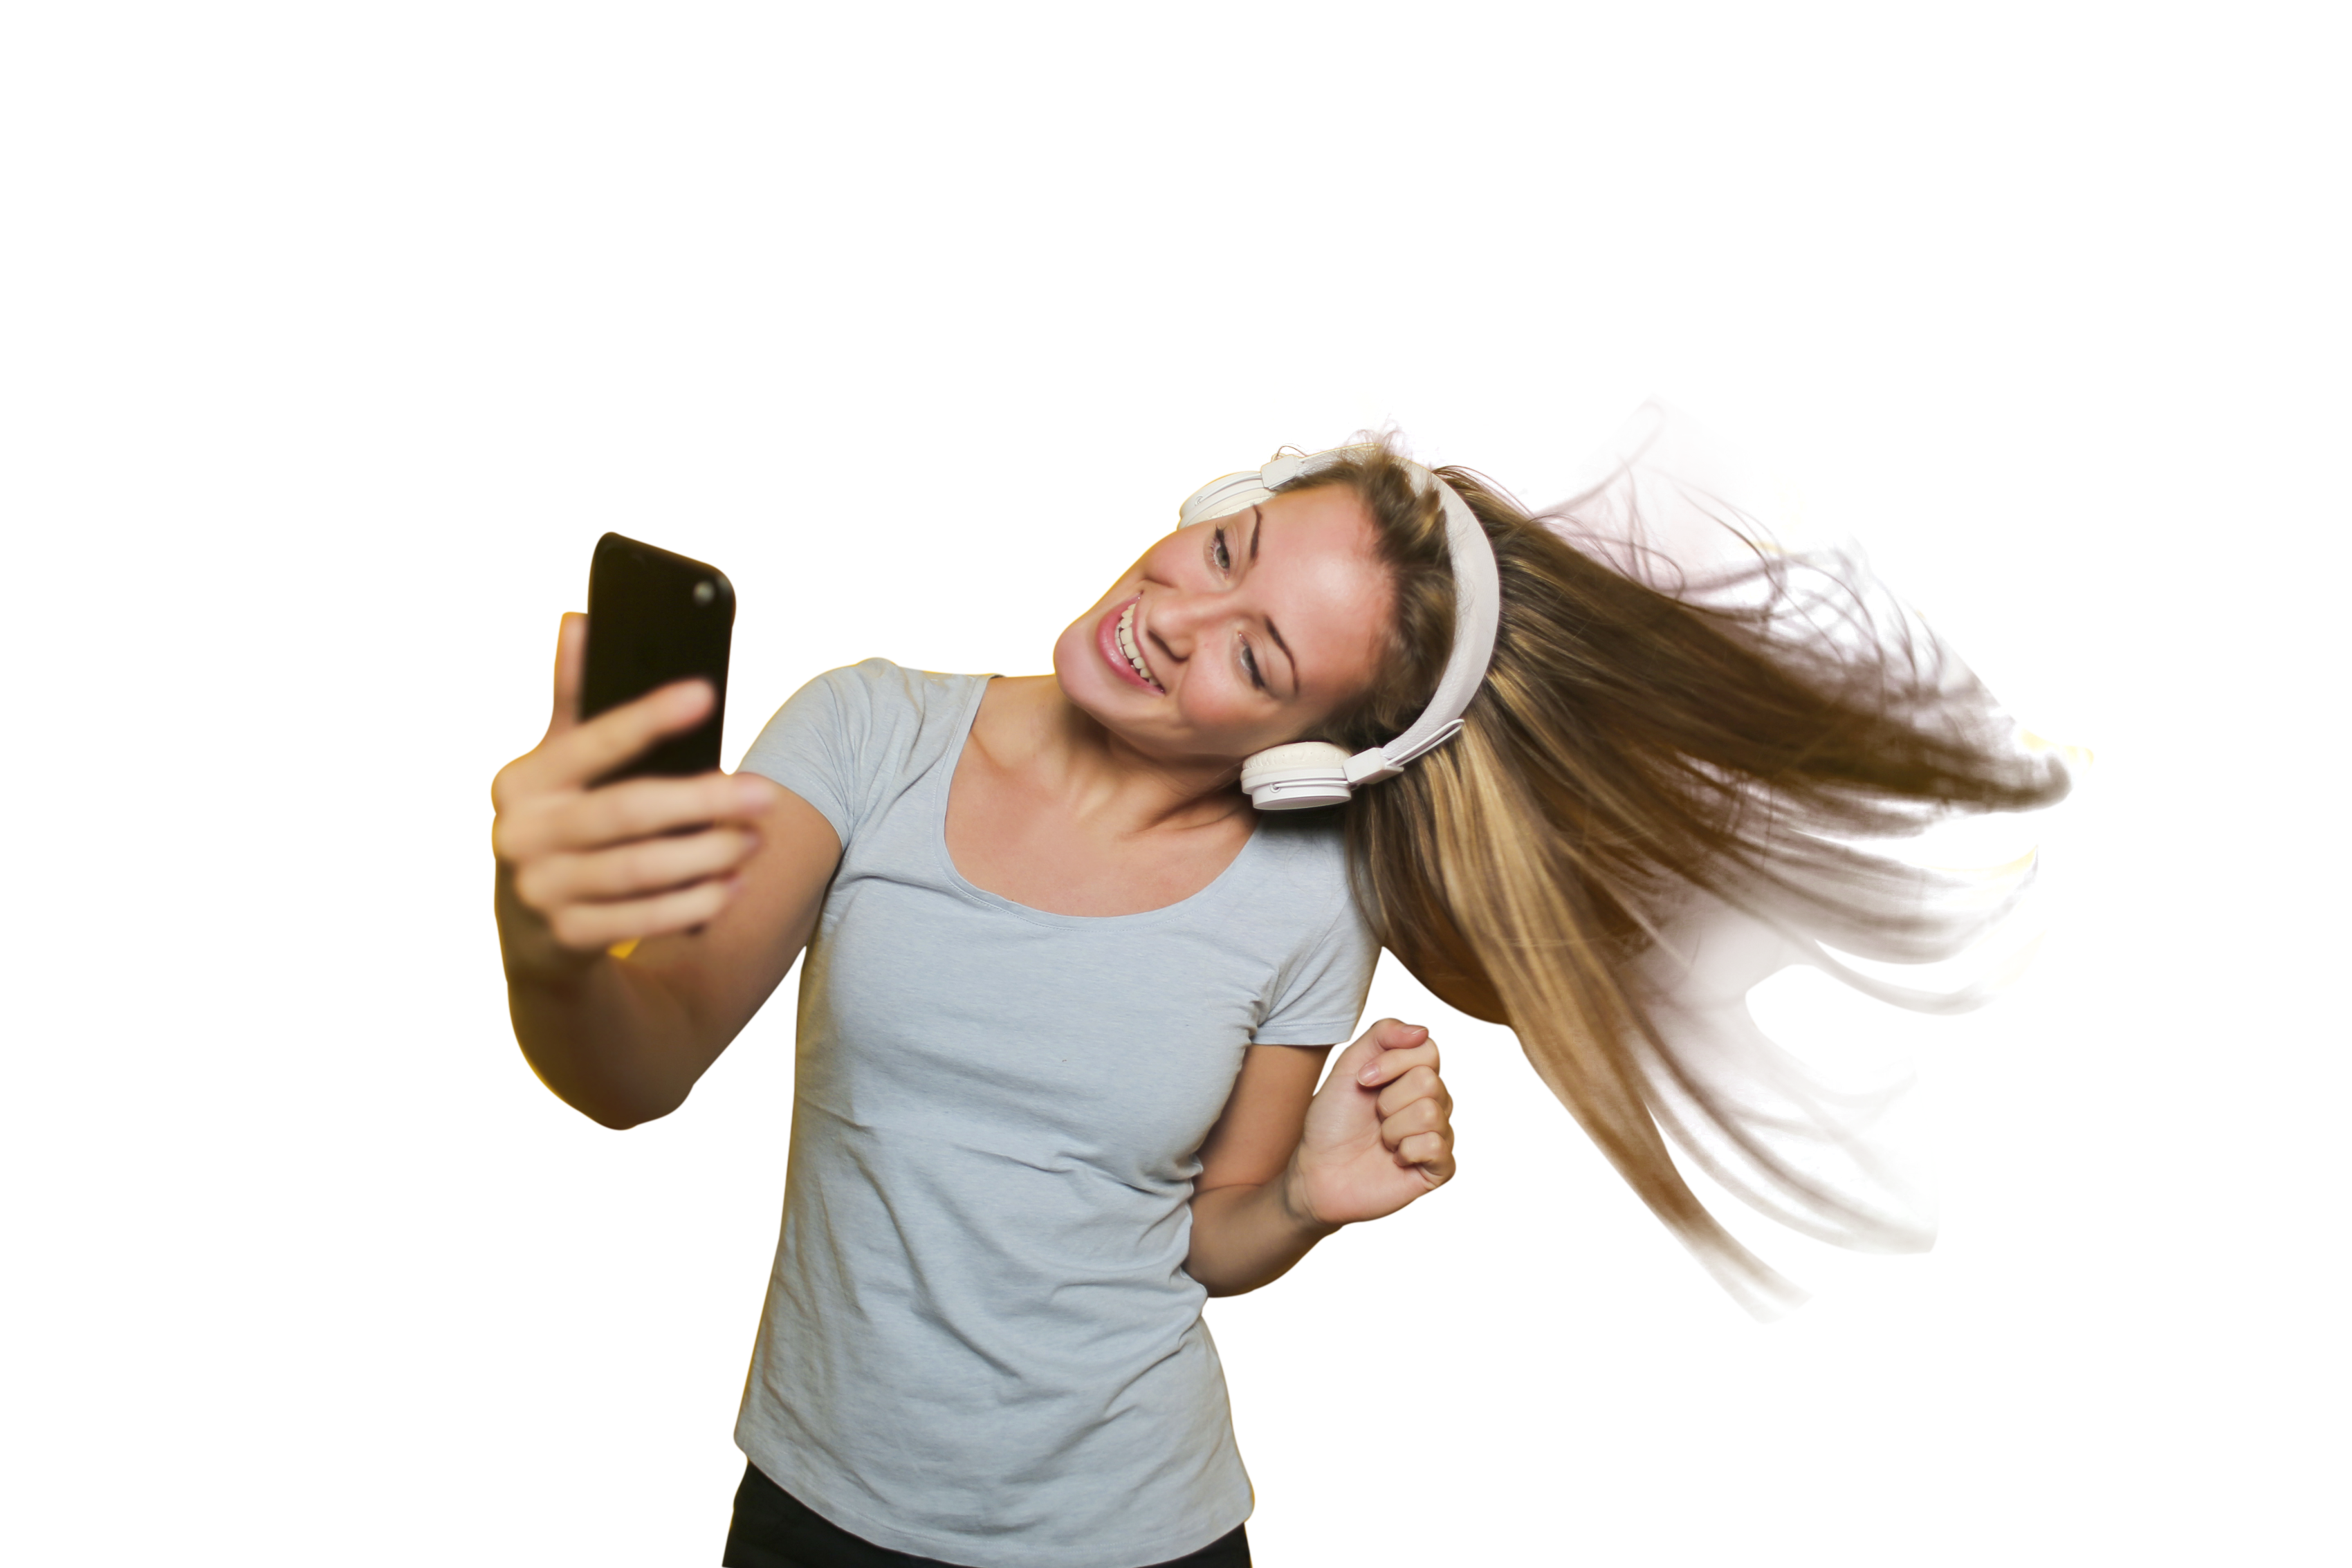 Girl Taking Selfie with listening music PNG Image.